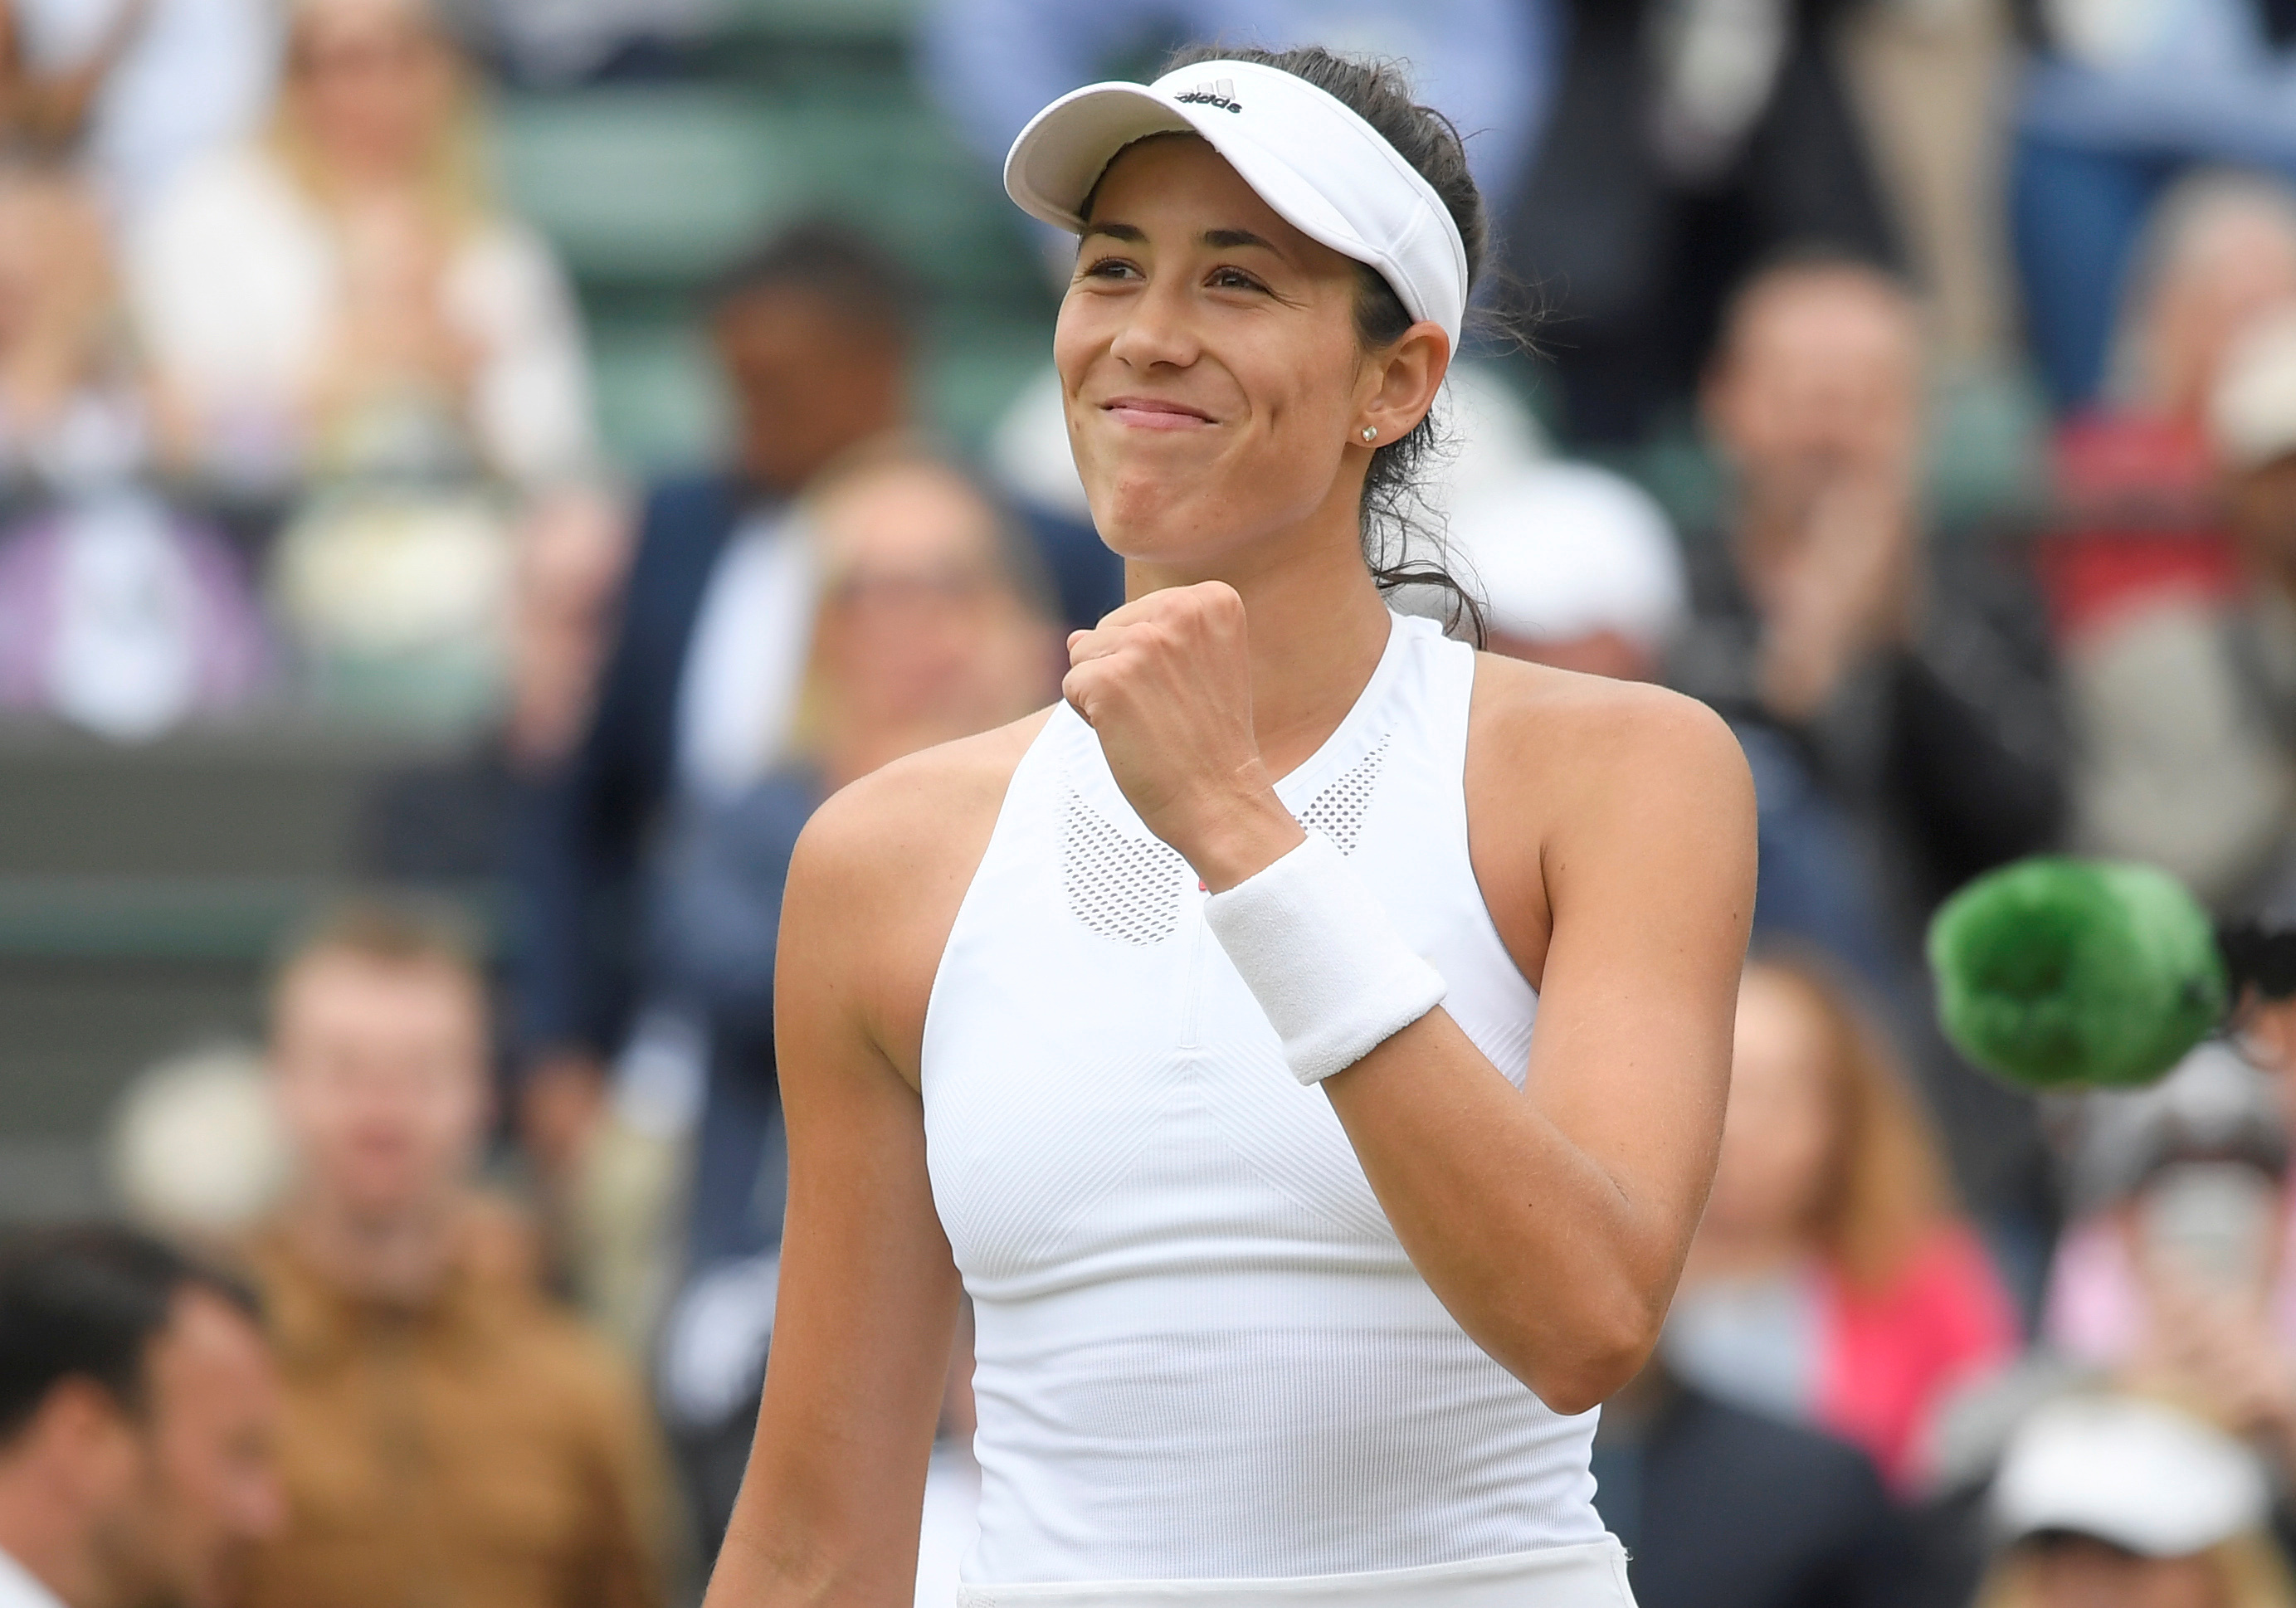 Garbine Muguruza dropped just one set on her way to the Wimbledon title last year (Image: Reuters)